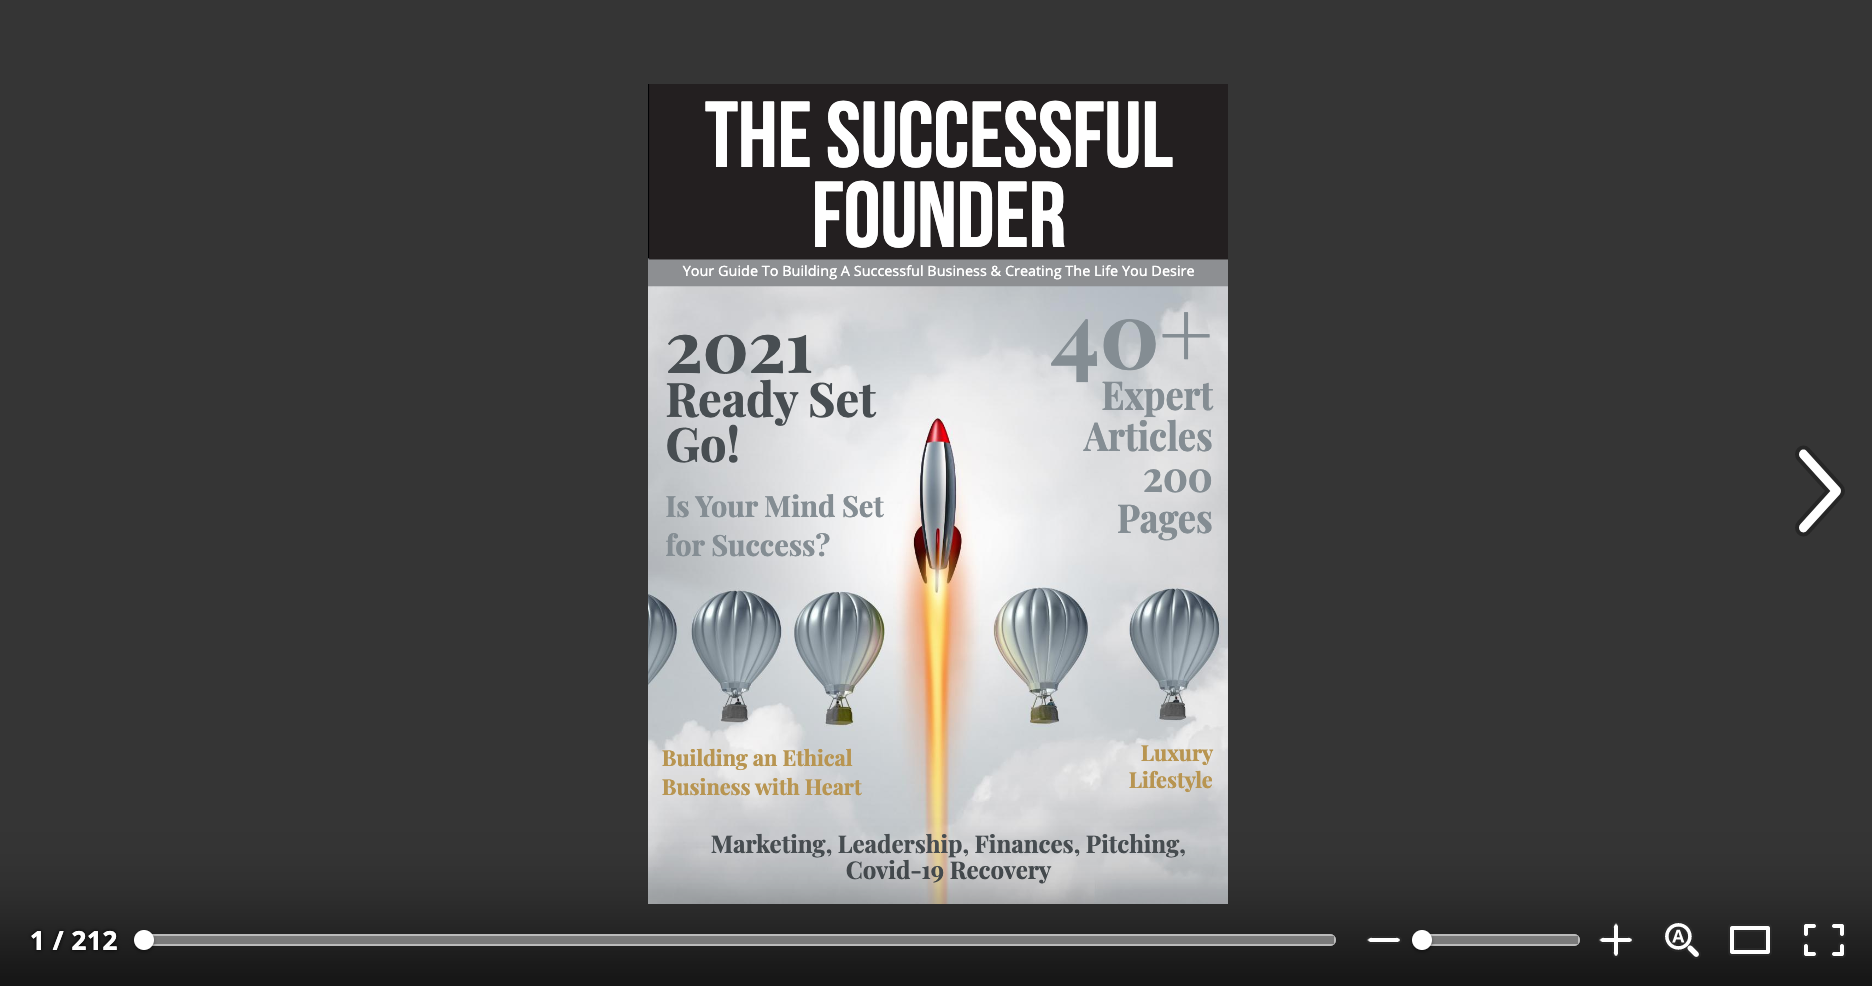 ShoutOut's Founder Dan Gable Featured in The Successful Founder (Winter Issue 2020/21)